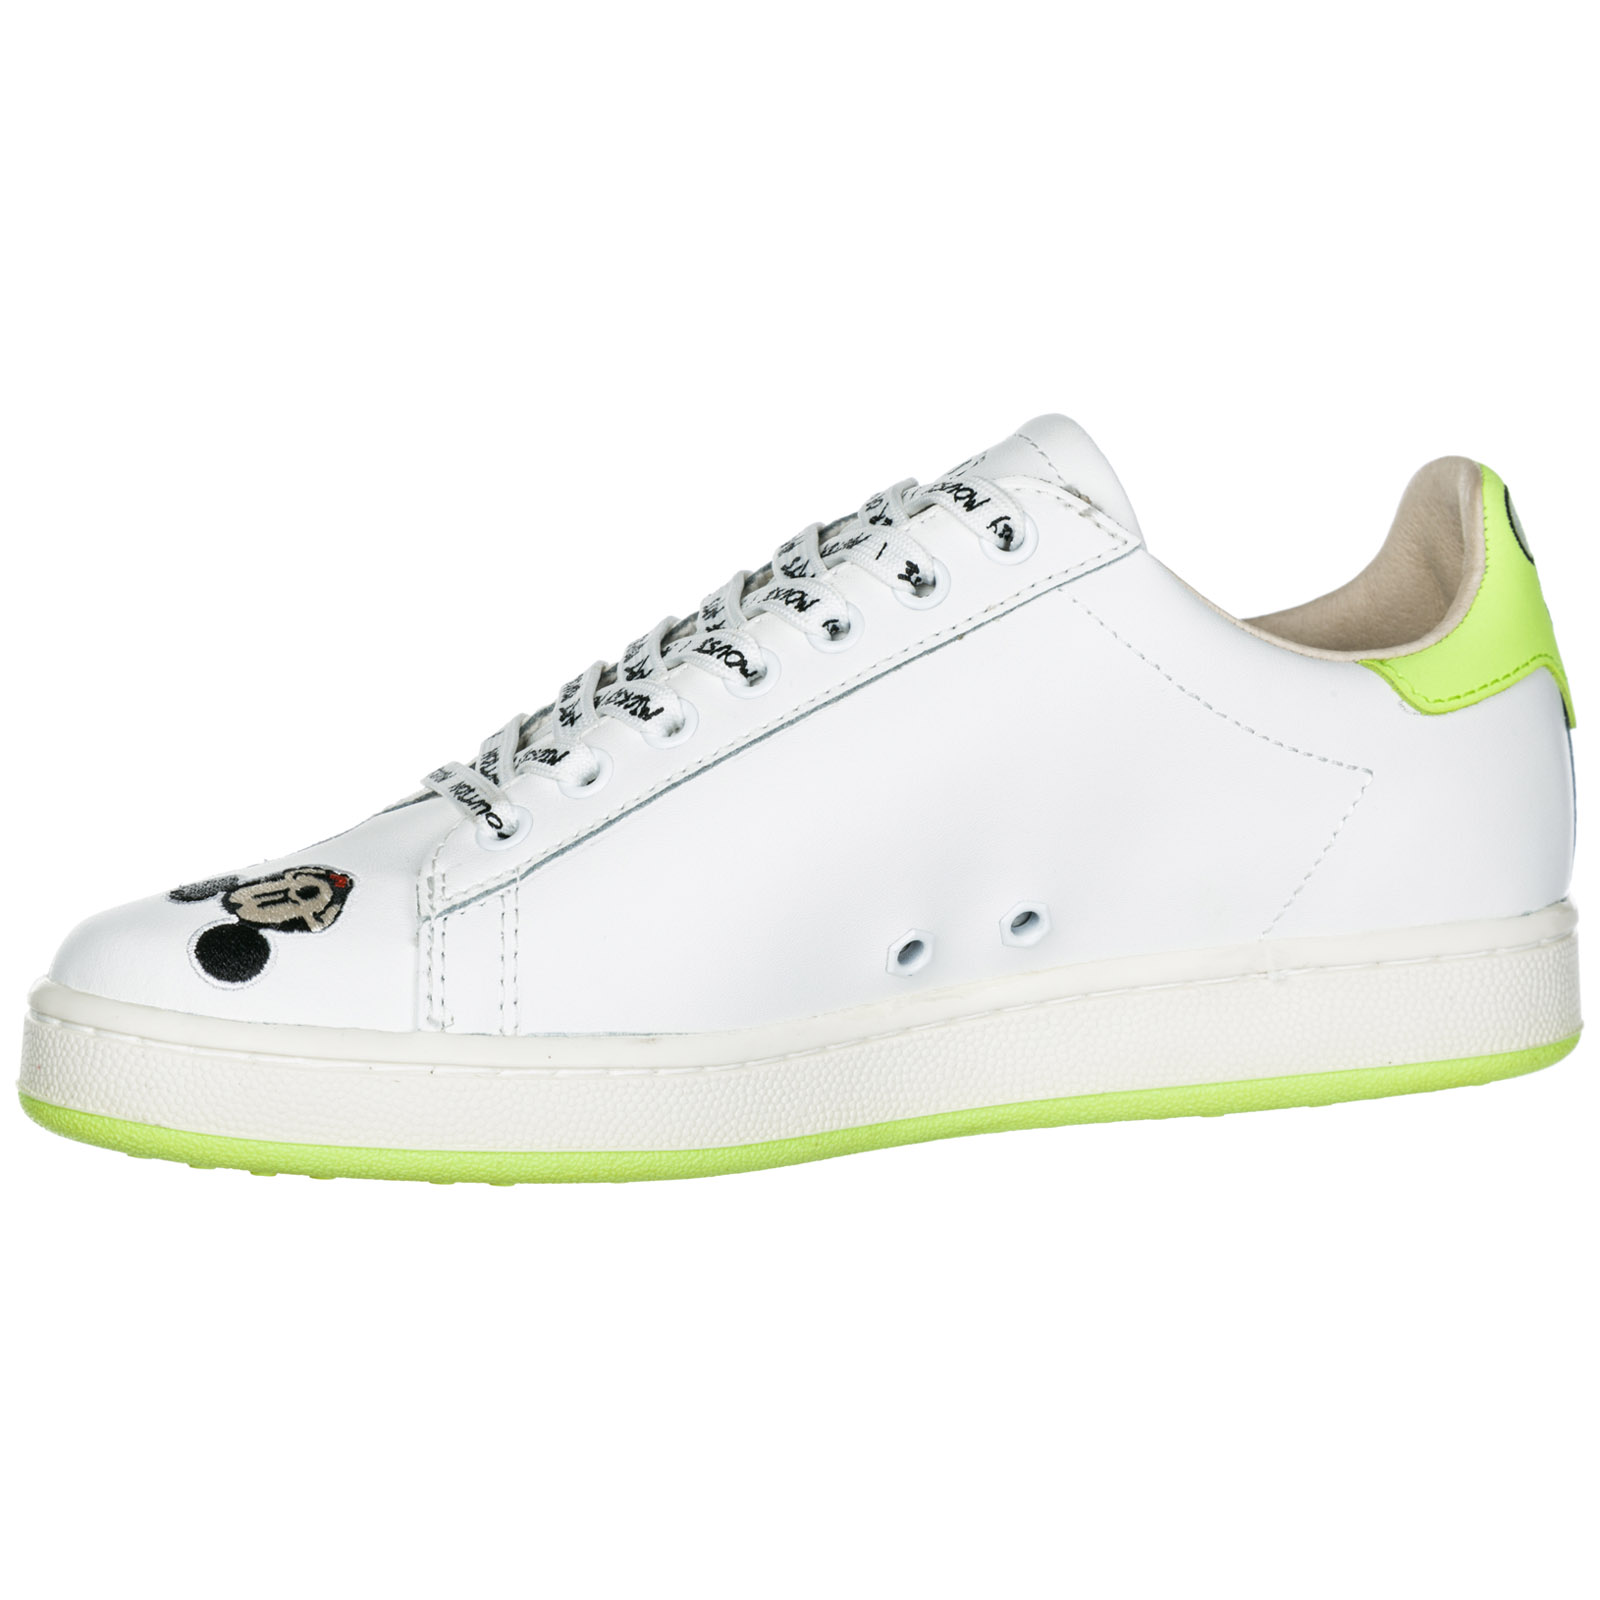 Sneakers Moa Master of Arts Disney Mickey Mouse MD310 white   green ... 8bcacc7b283